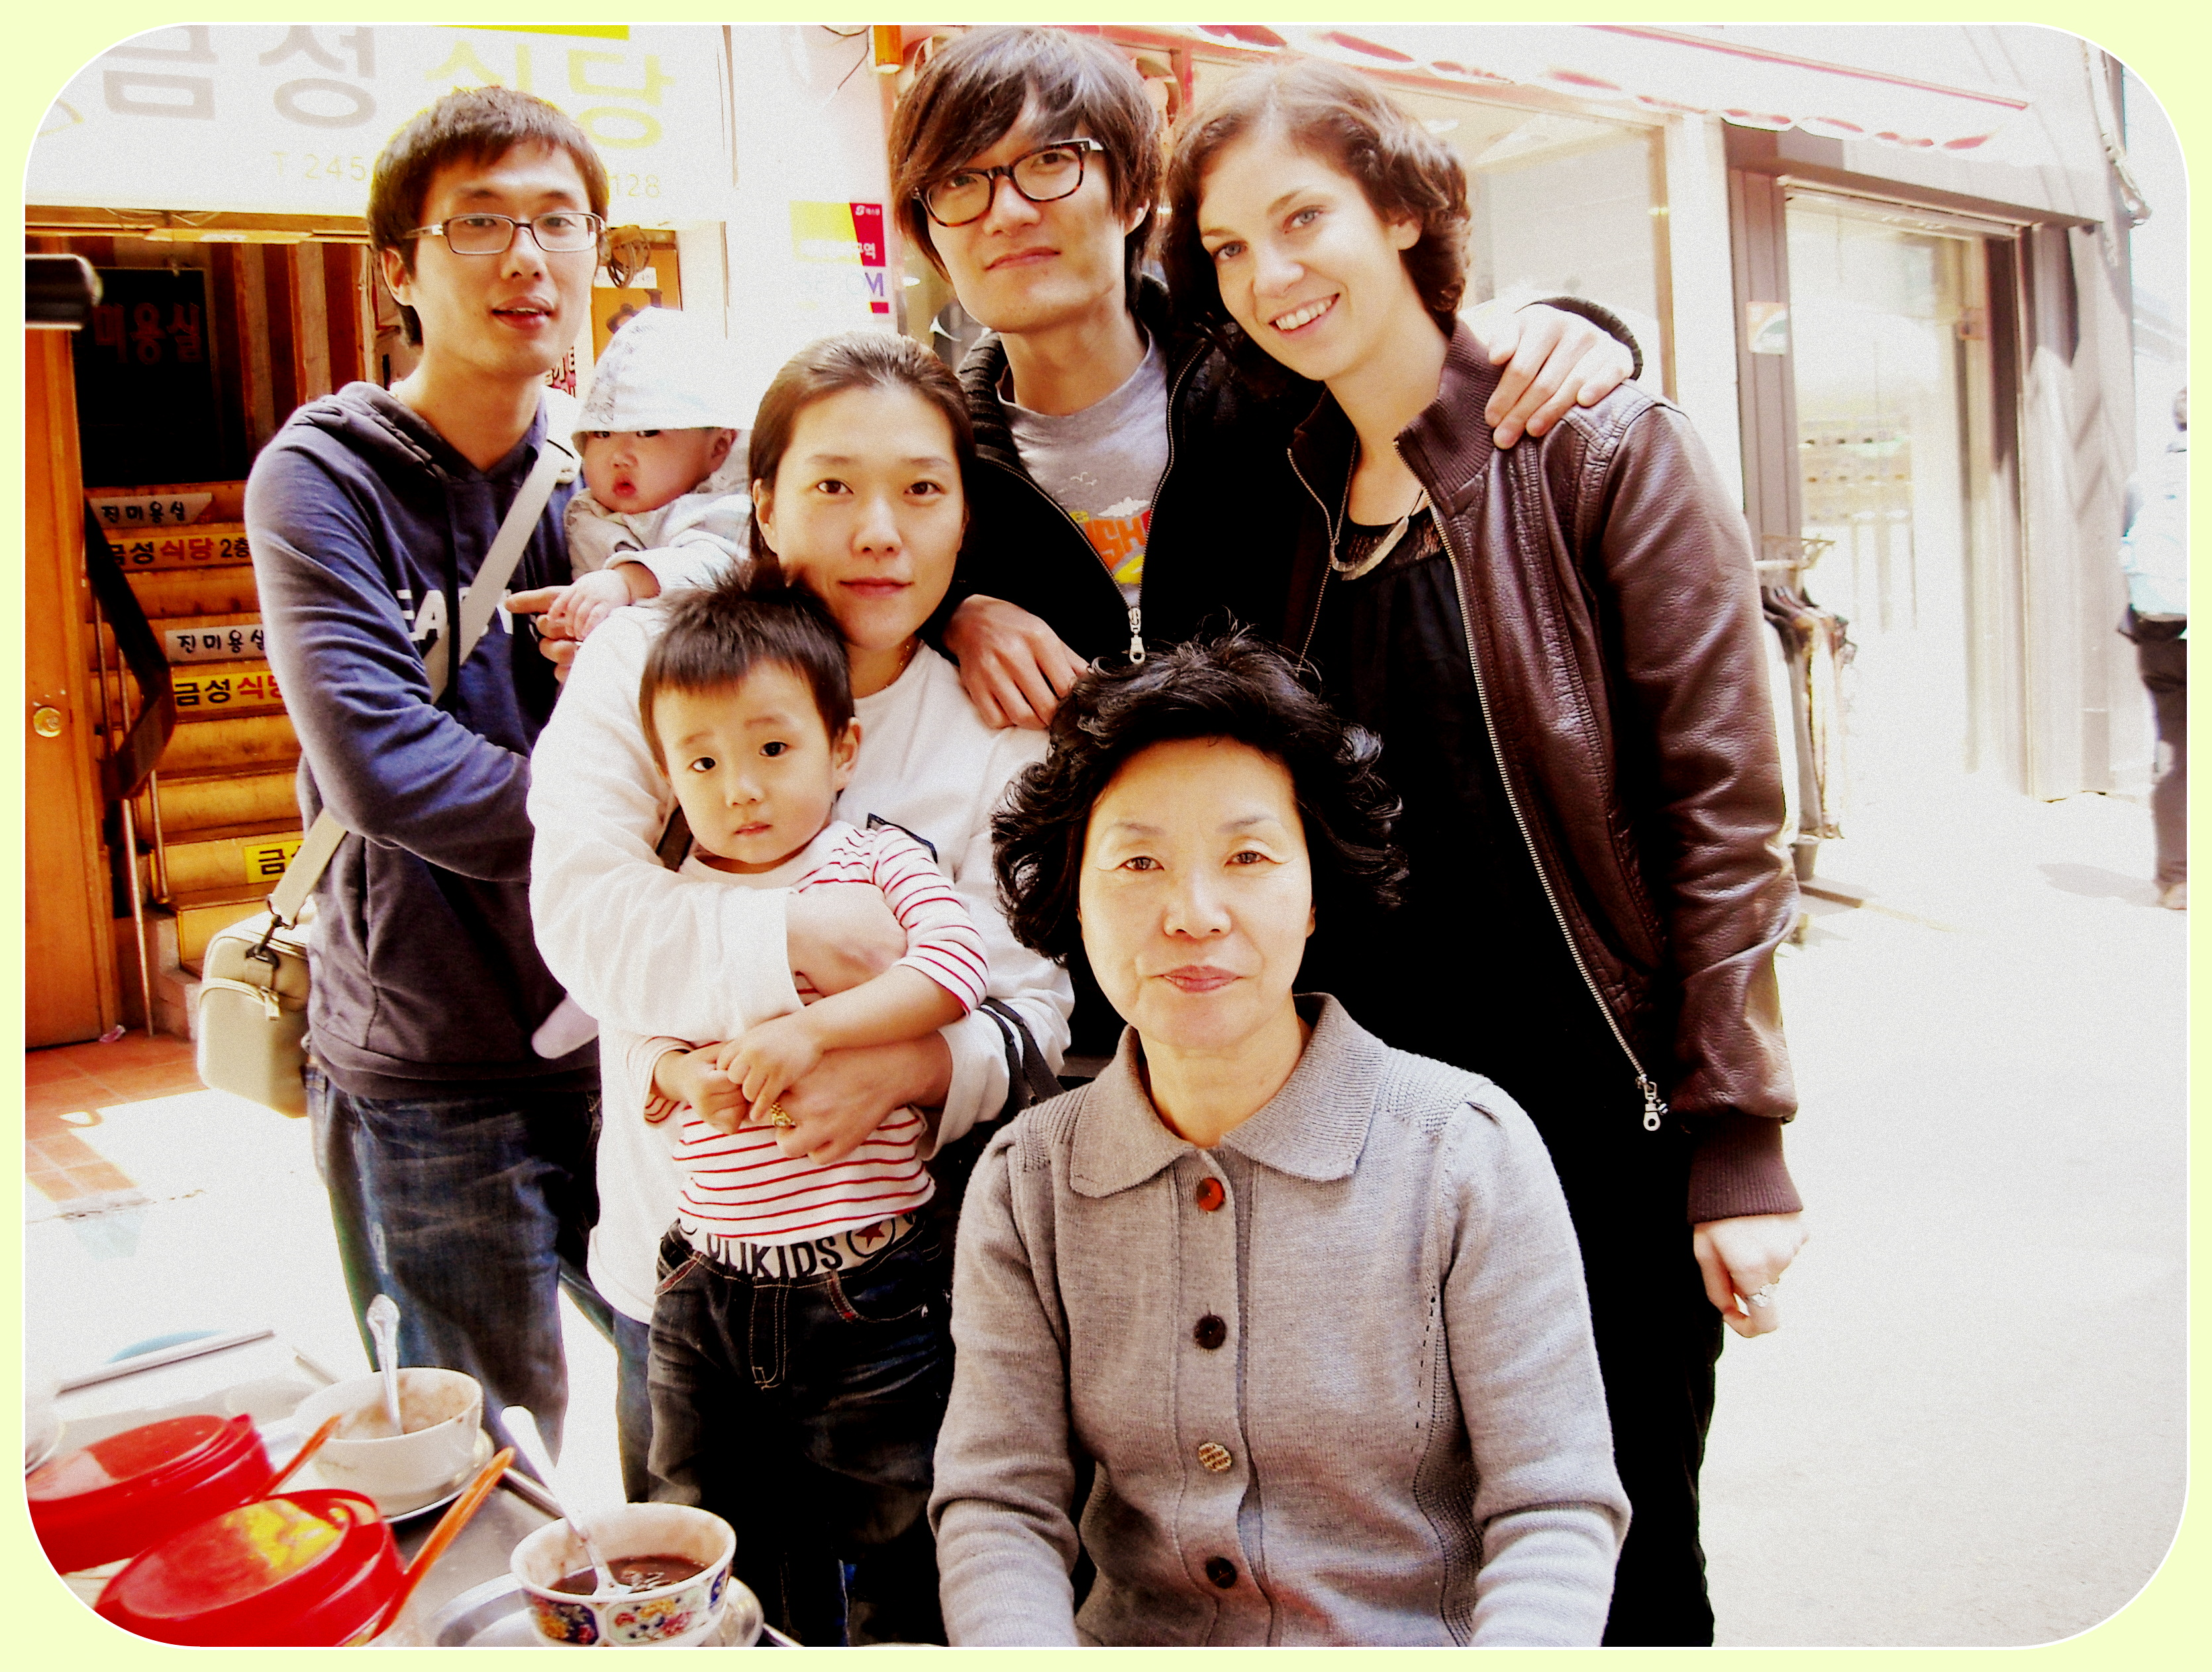 First Meeting The Korean Women Of The Family